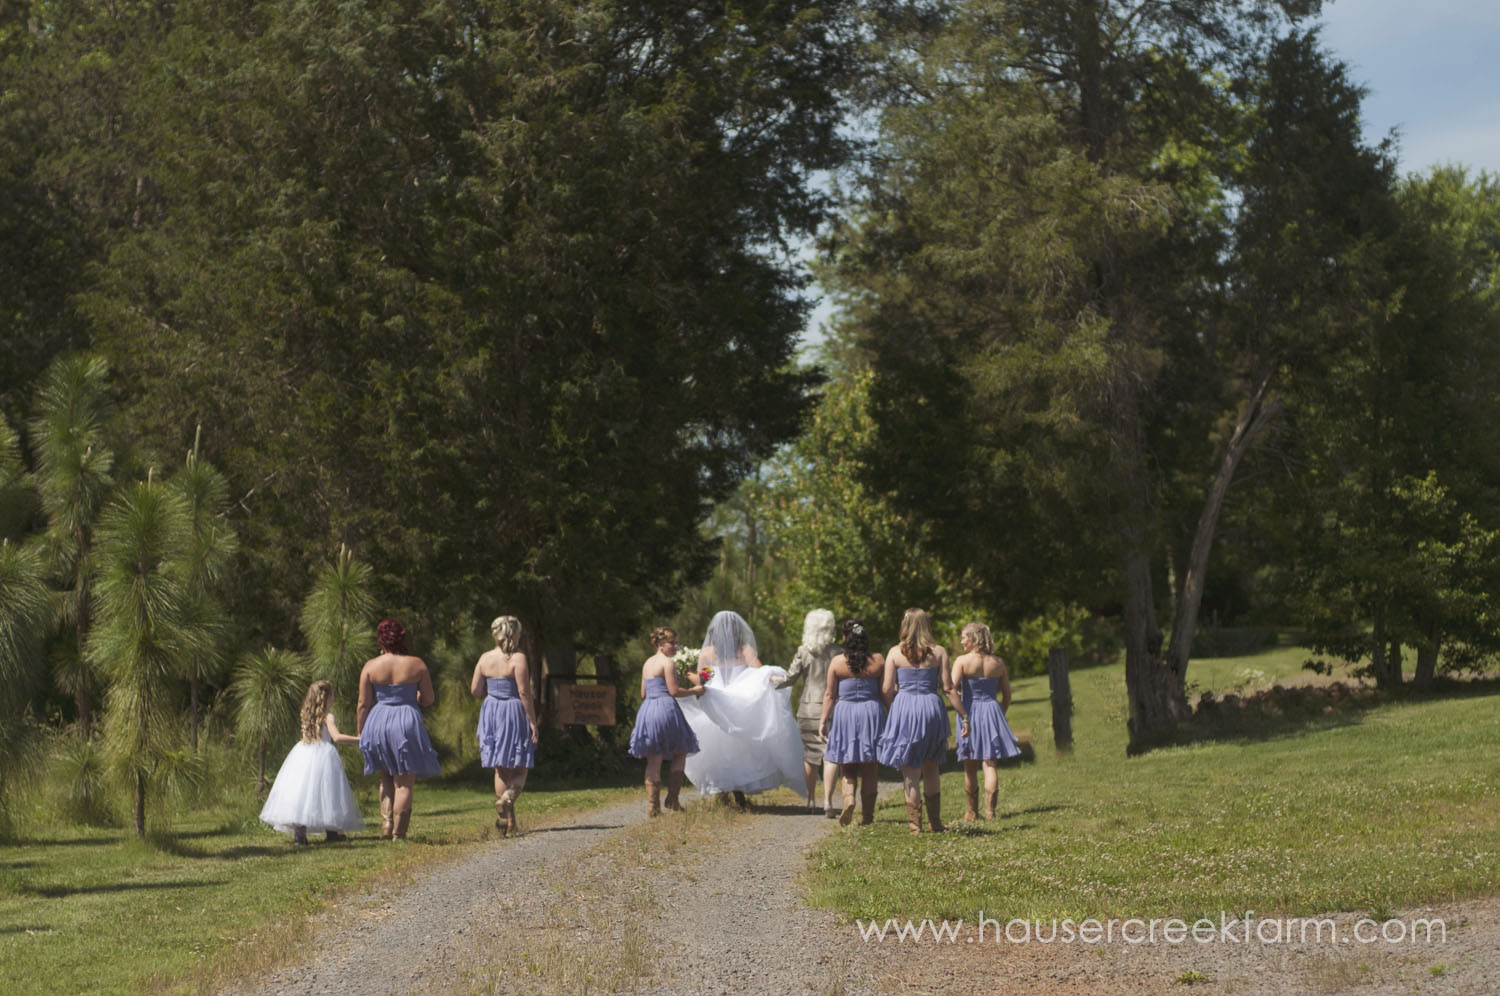 bride-and-bridesmaids-at-farm-wedding-a-photo-by-ashley-0263.jpg